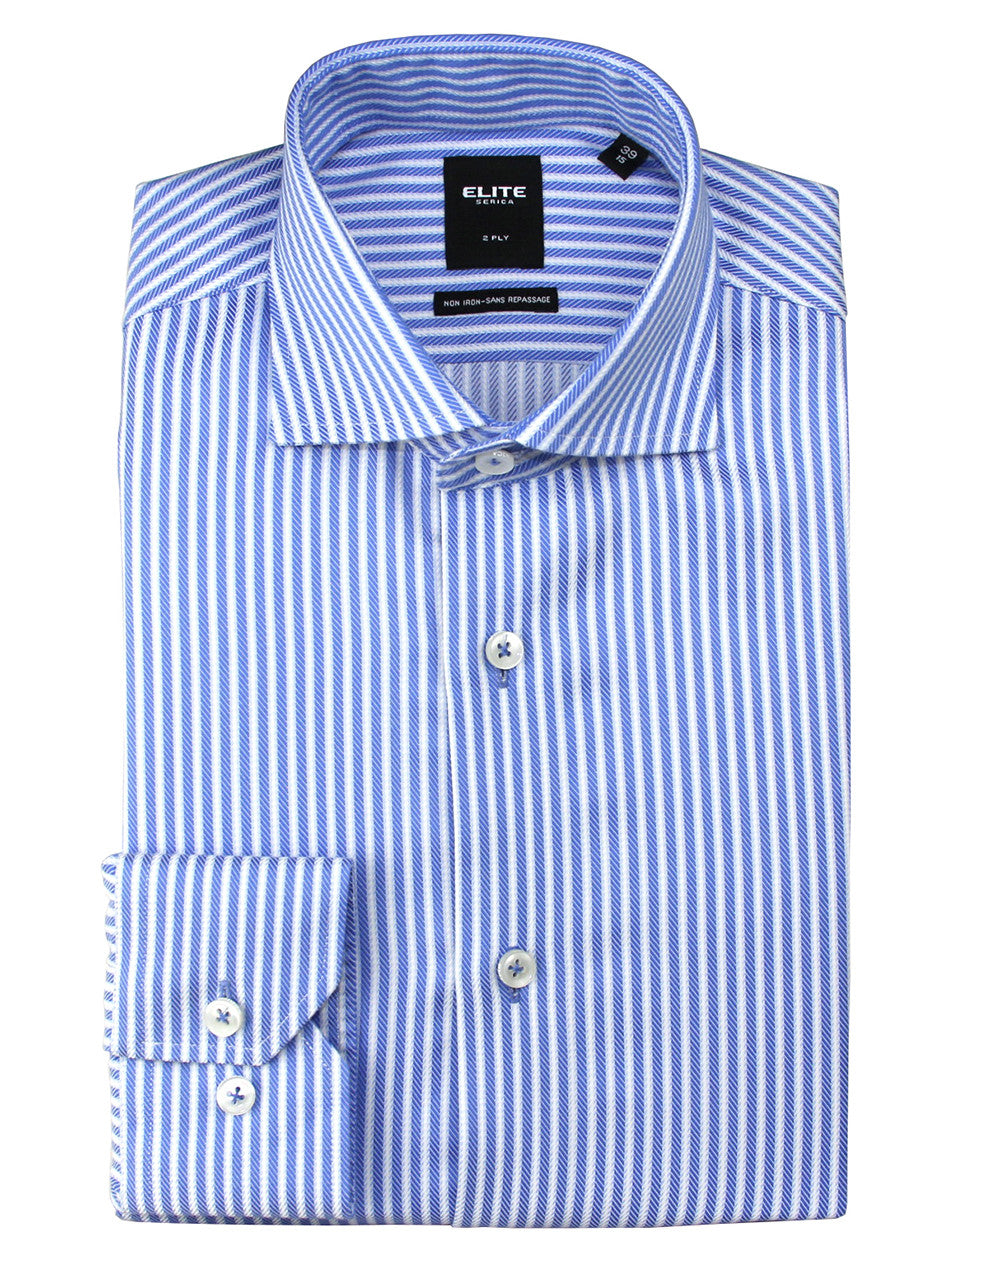 34fd1b0c5d1db3 NON-IRON, SERICA Elite dress shirt | Blue Stripe - Slim-fit ...